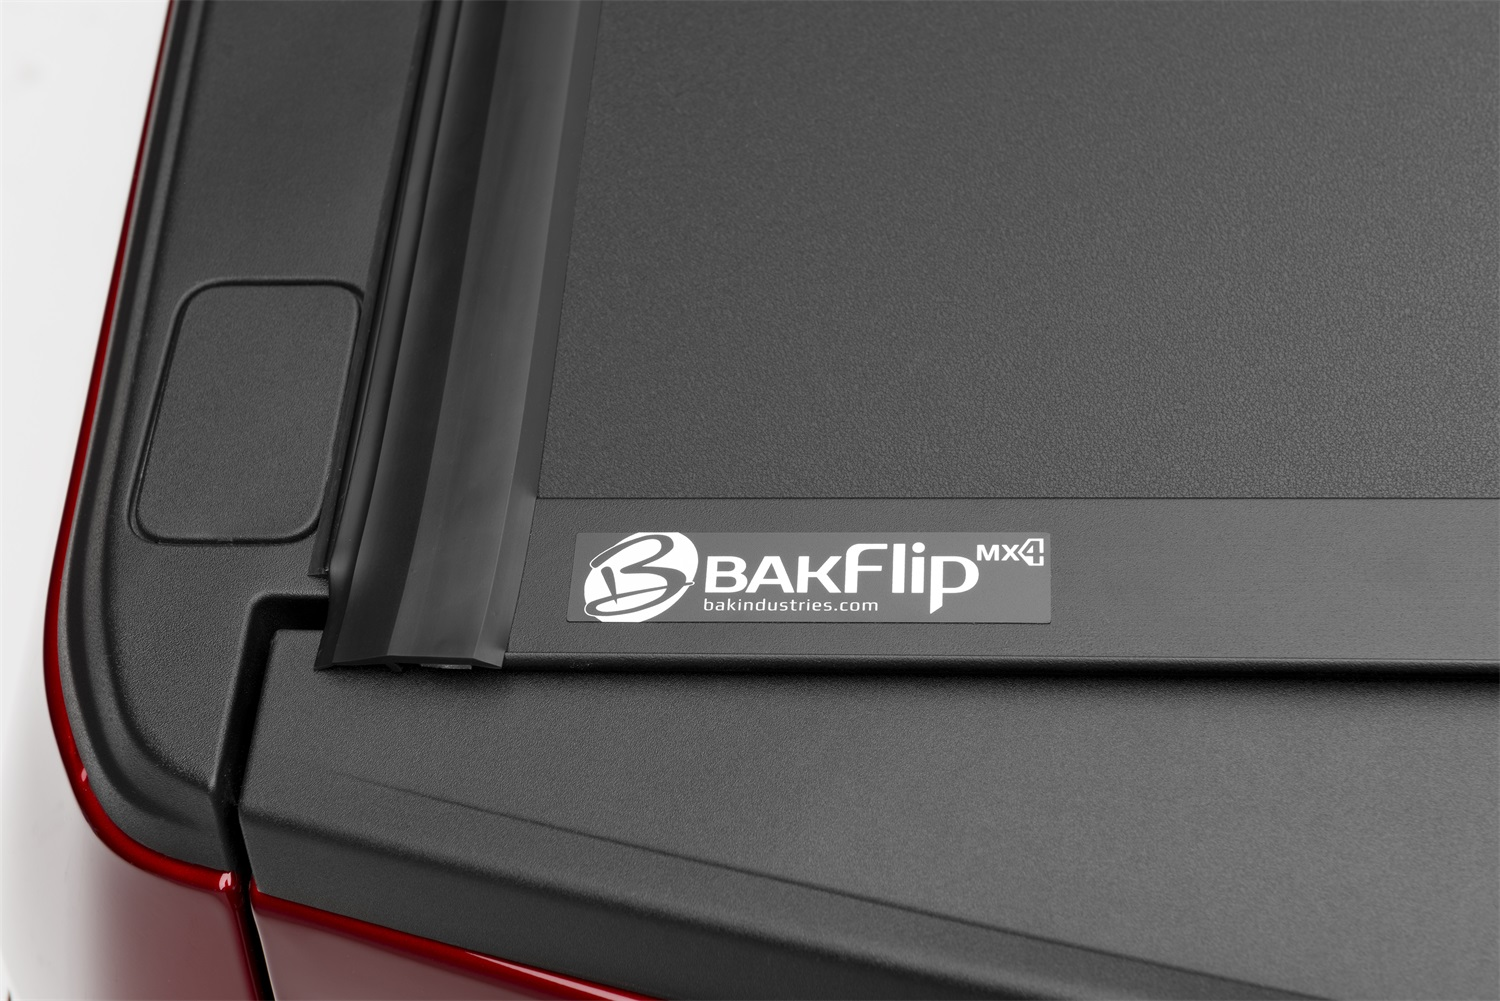 bak bakflip-mx4 10bk_mx4_ford_detail_cornerdetail_h